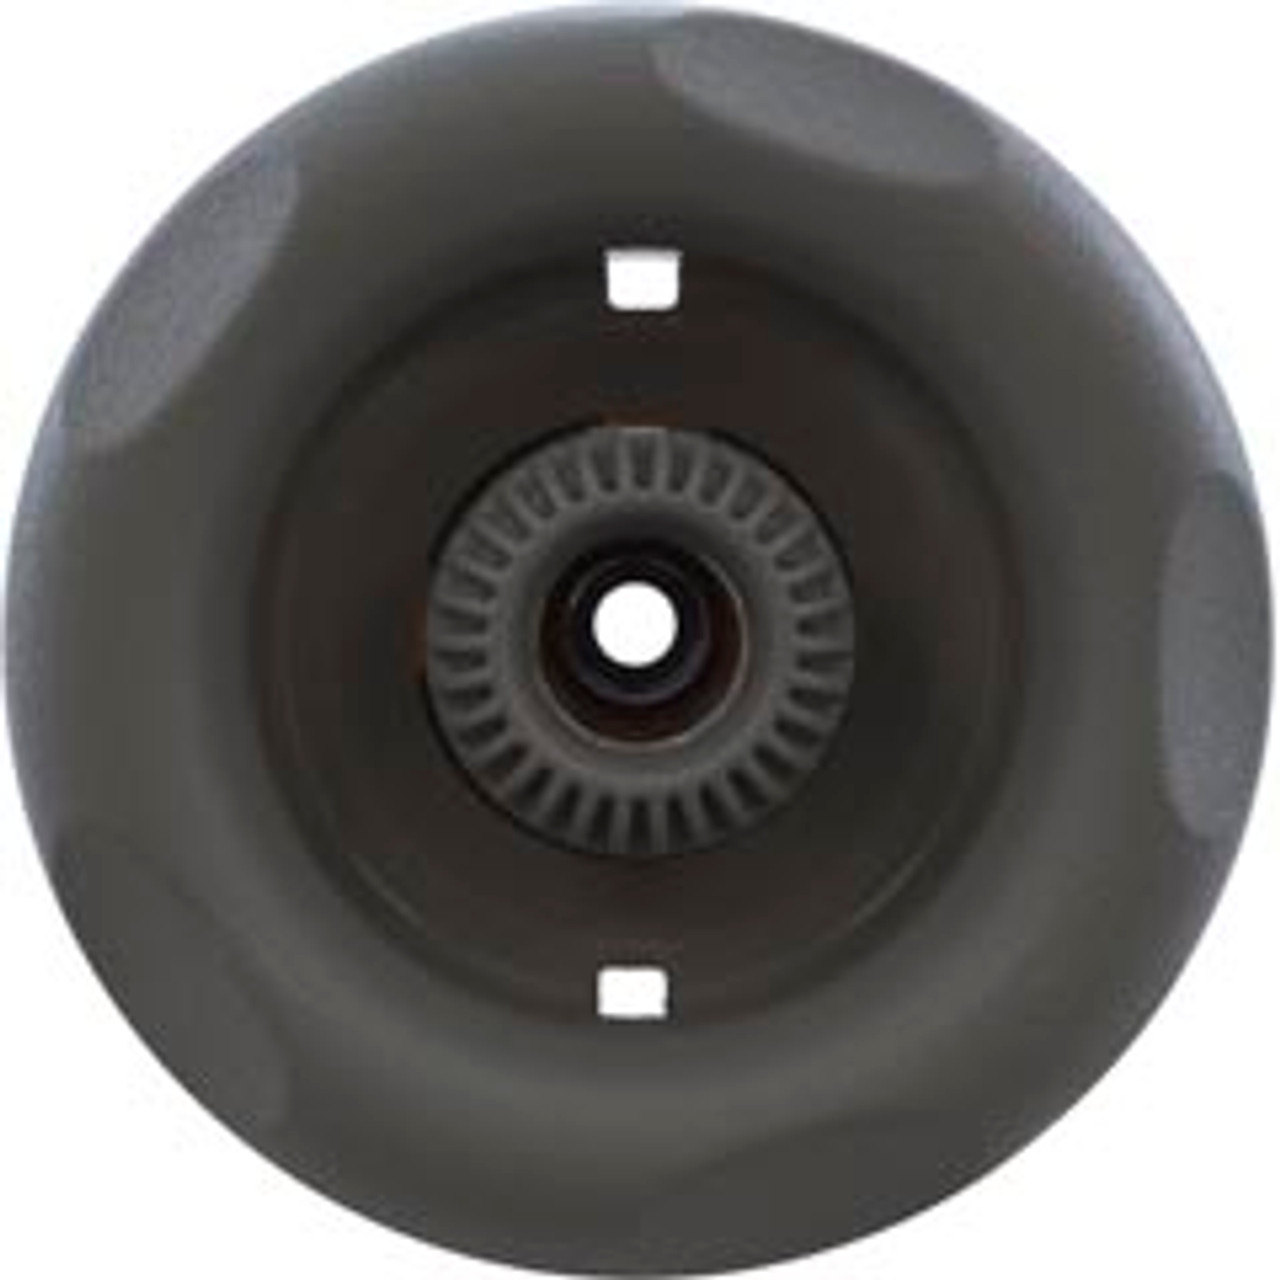 """229-7637, Waterway, 5"""", Dia, Power, Storm, Gray, Directional,  Scalloped, Jet, Internal, FREE SHIPPING, Hot Tub, Spa"""